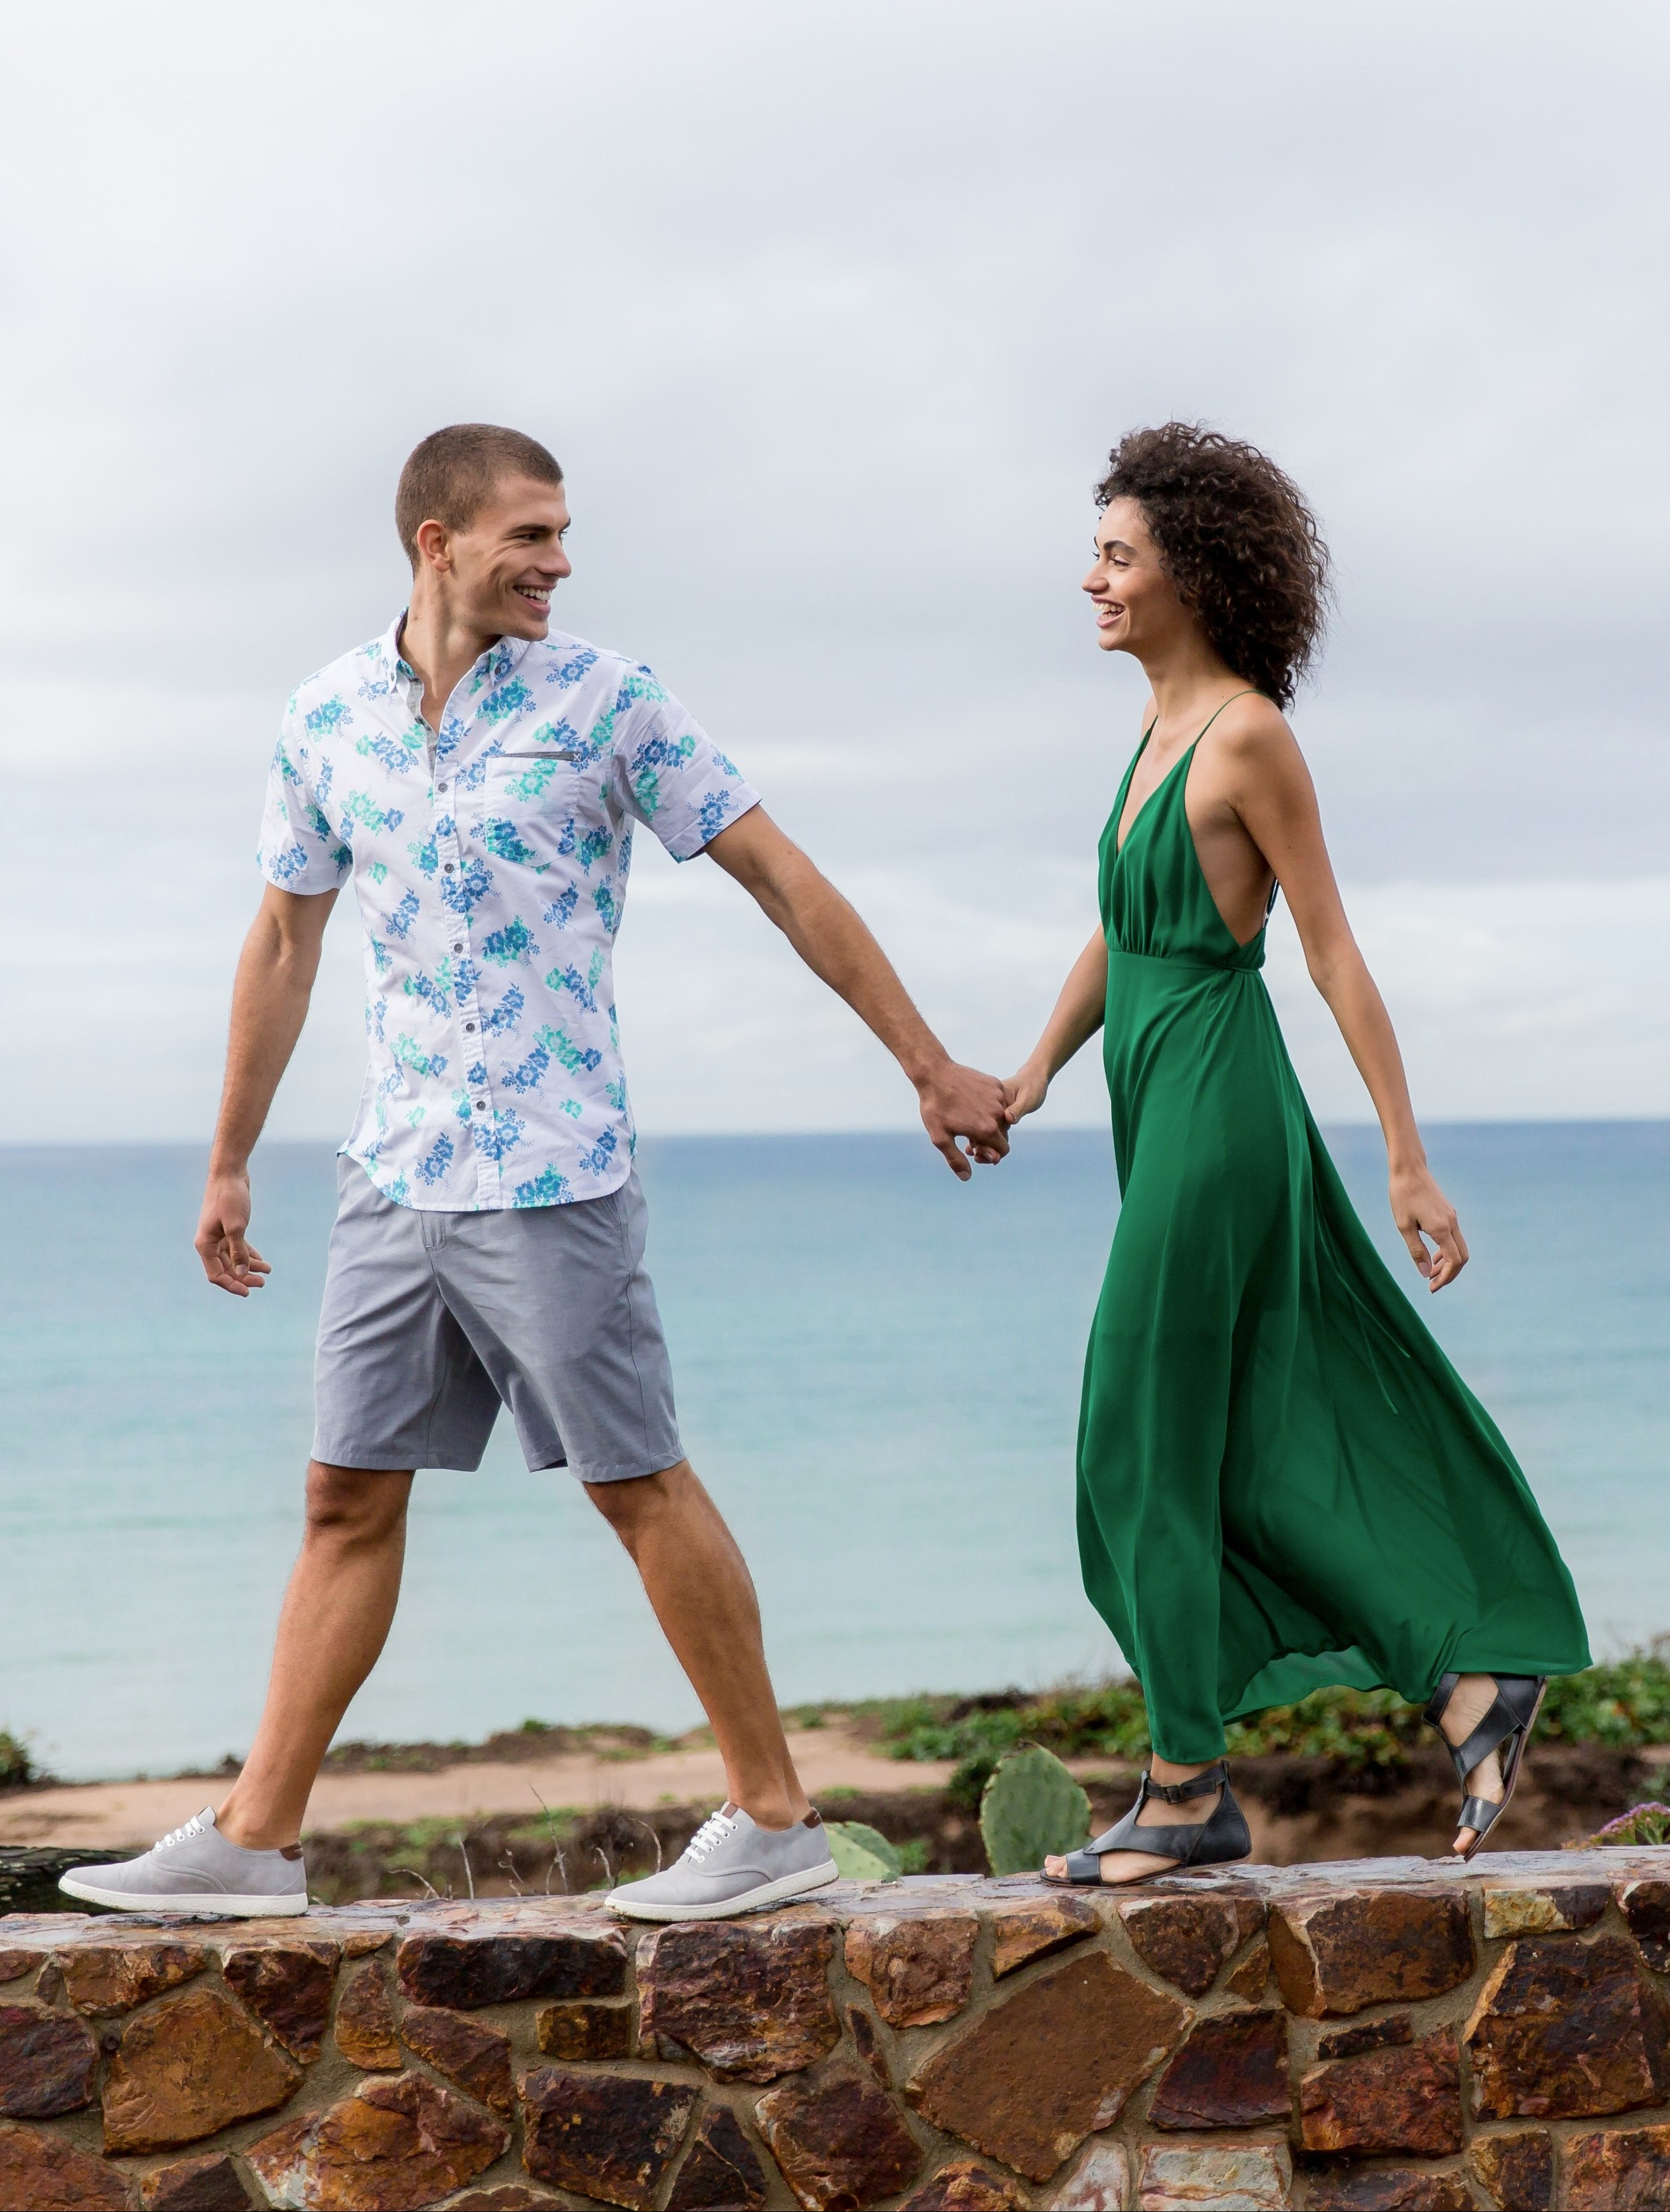 Men's and Women's Vacation Outfits From Buckle featuring a Departwest button-up shirt, BKE Shorts, Steve Madden sneakers, Essue maxi dress and Roan Sandals